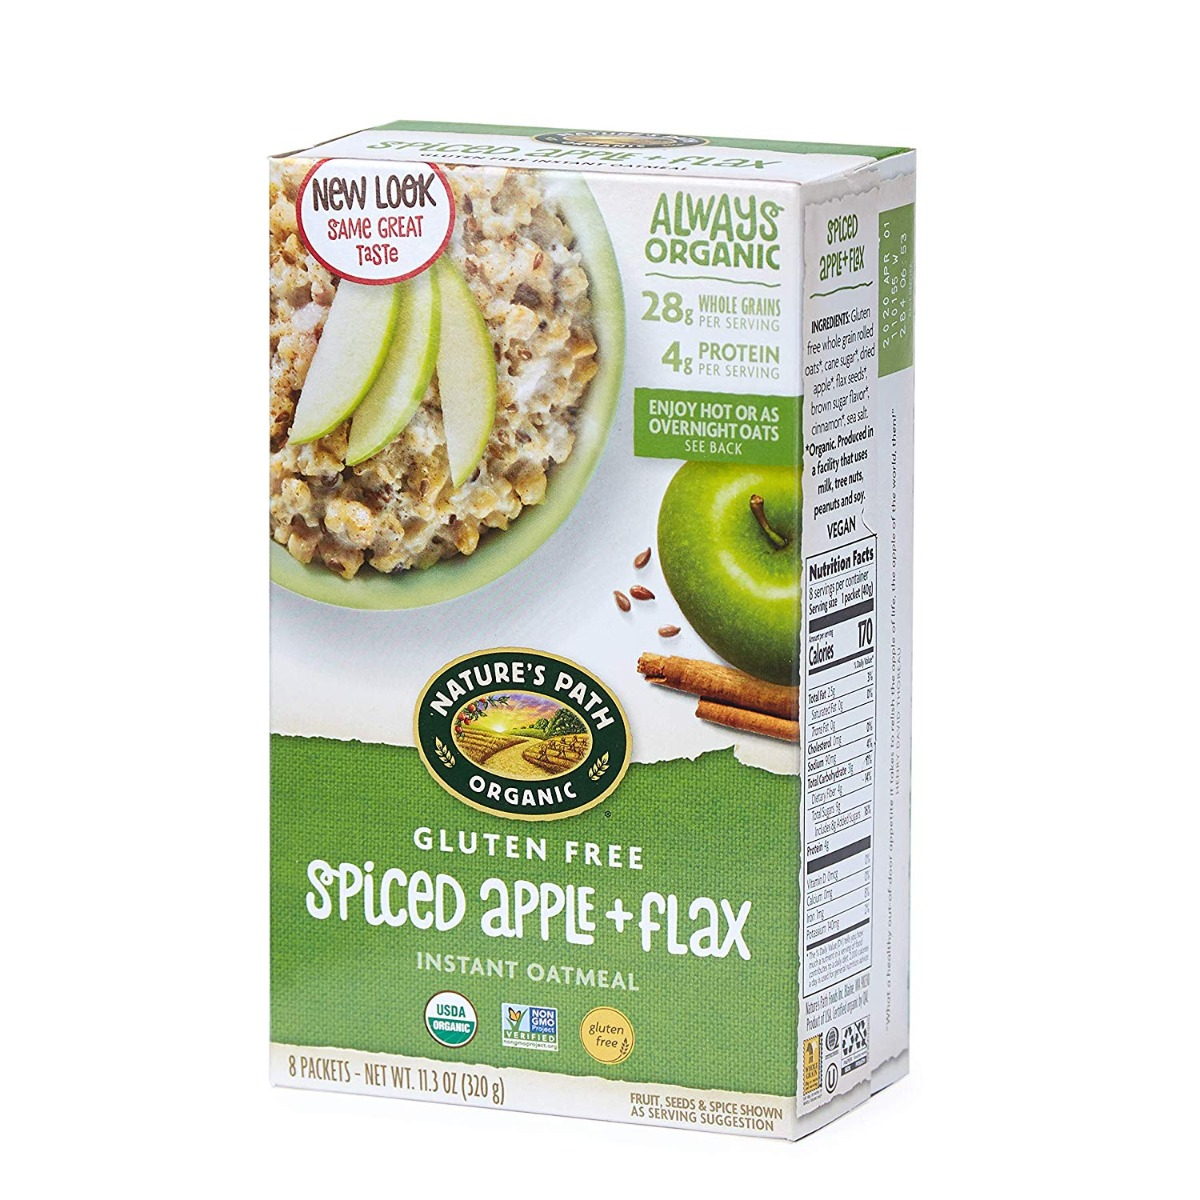 NATURES PATH: Gluten Free Spiced Apple with Flax Oatmeal, 11.3 oz